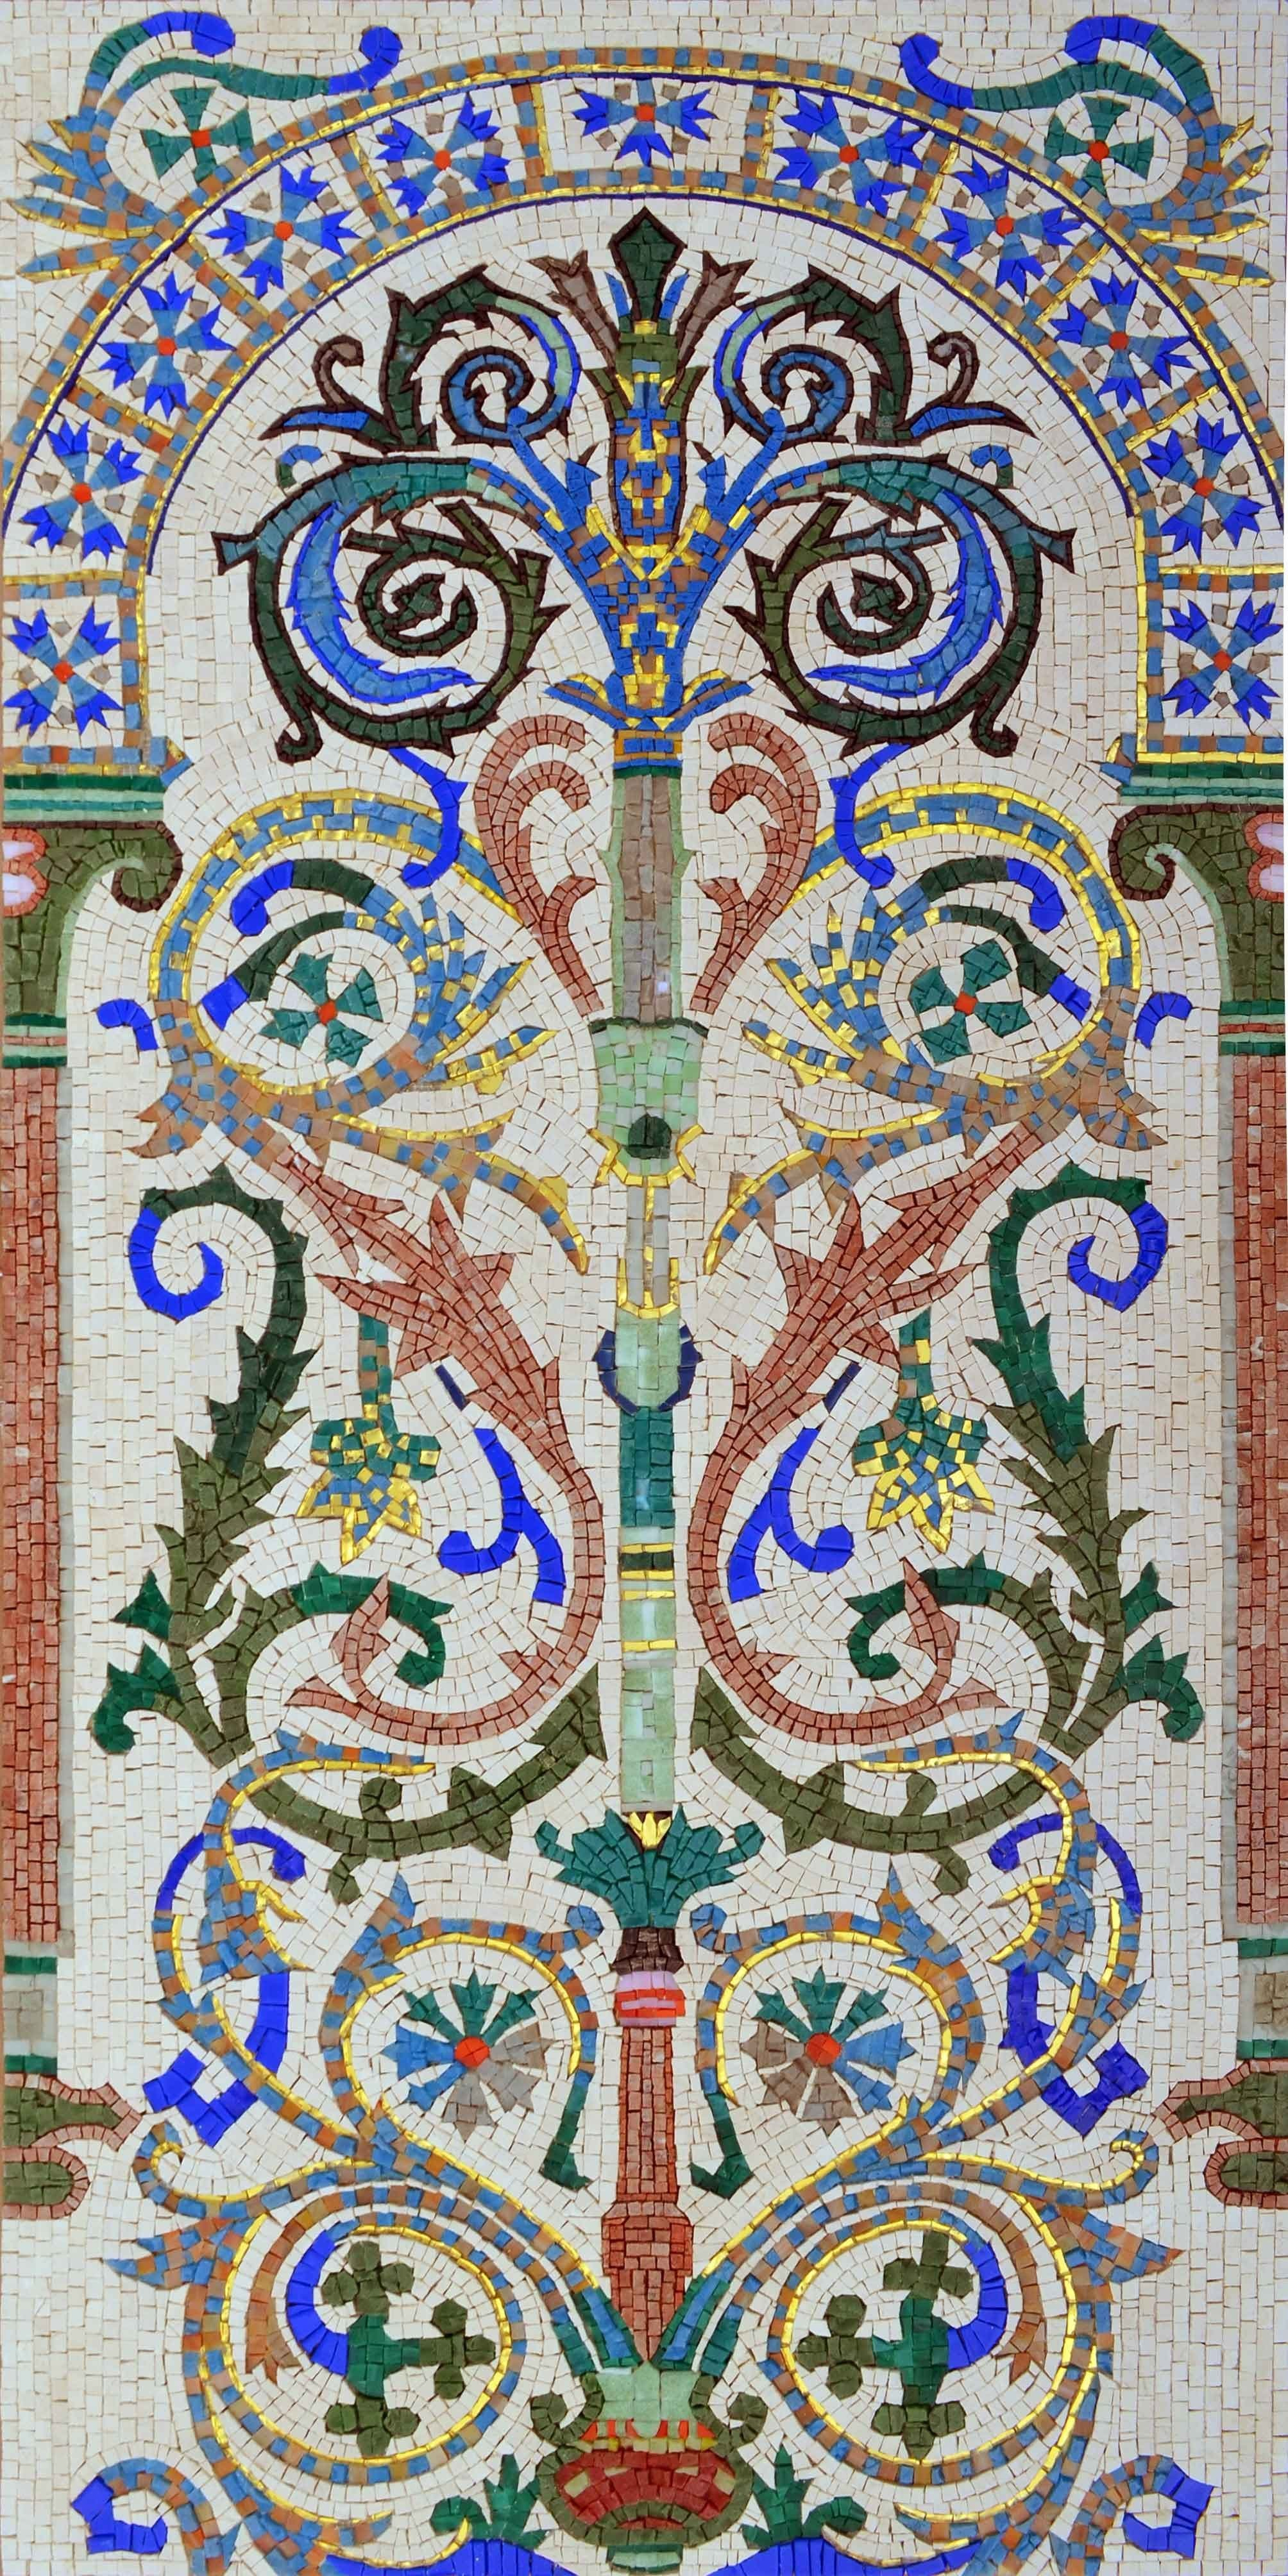 Mosaic Patterns - Tree of Kabbalah